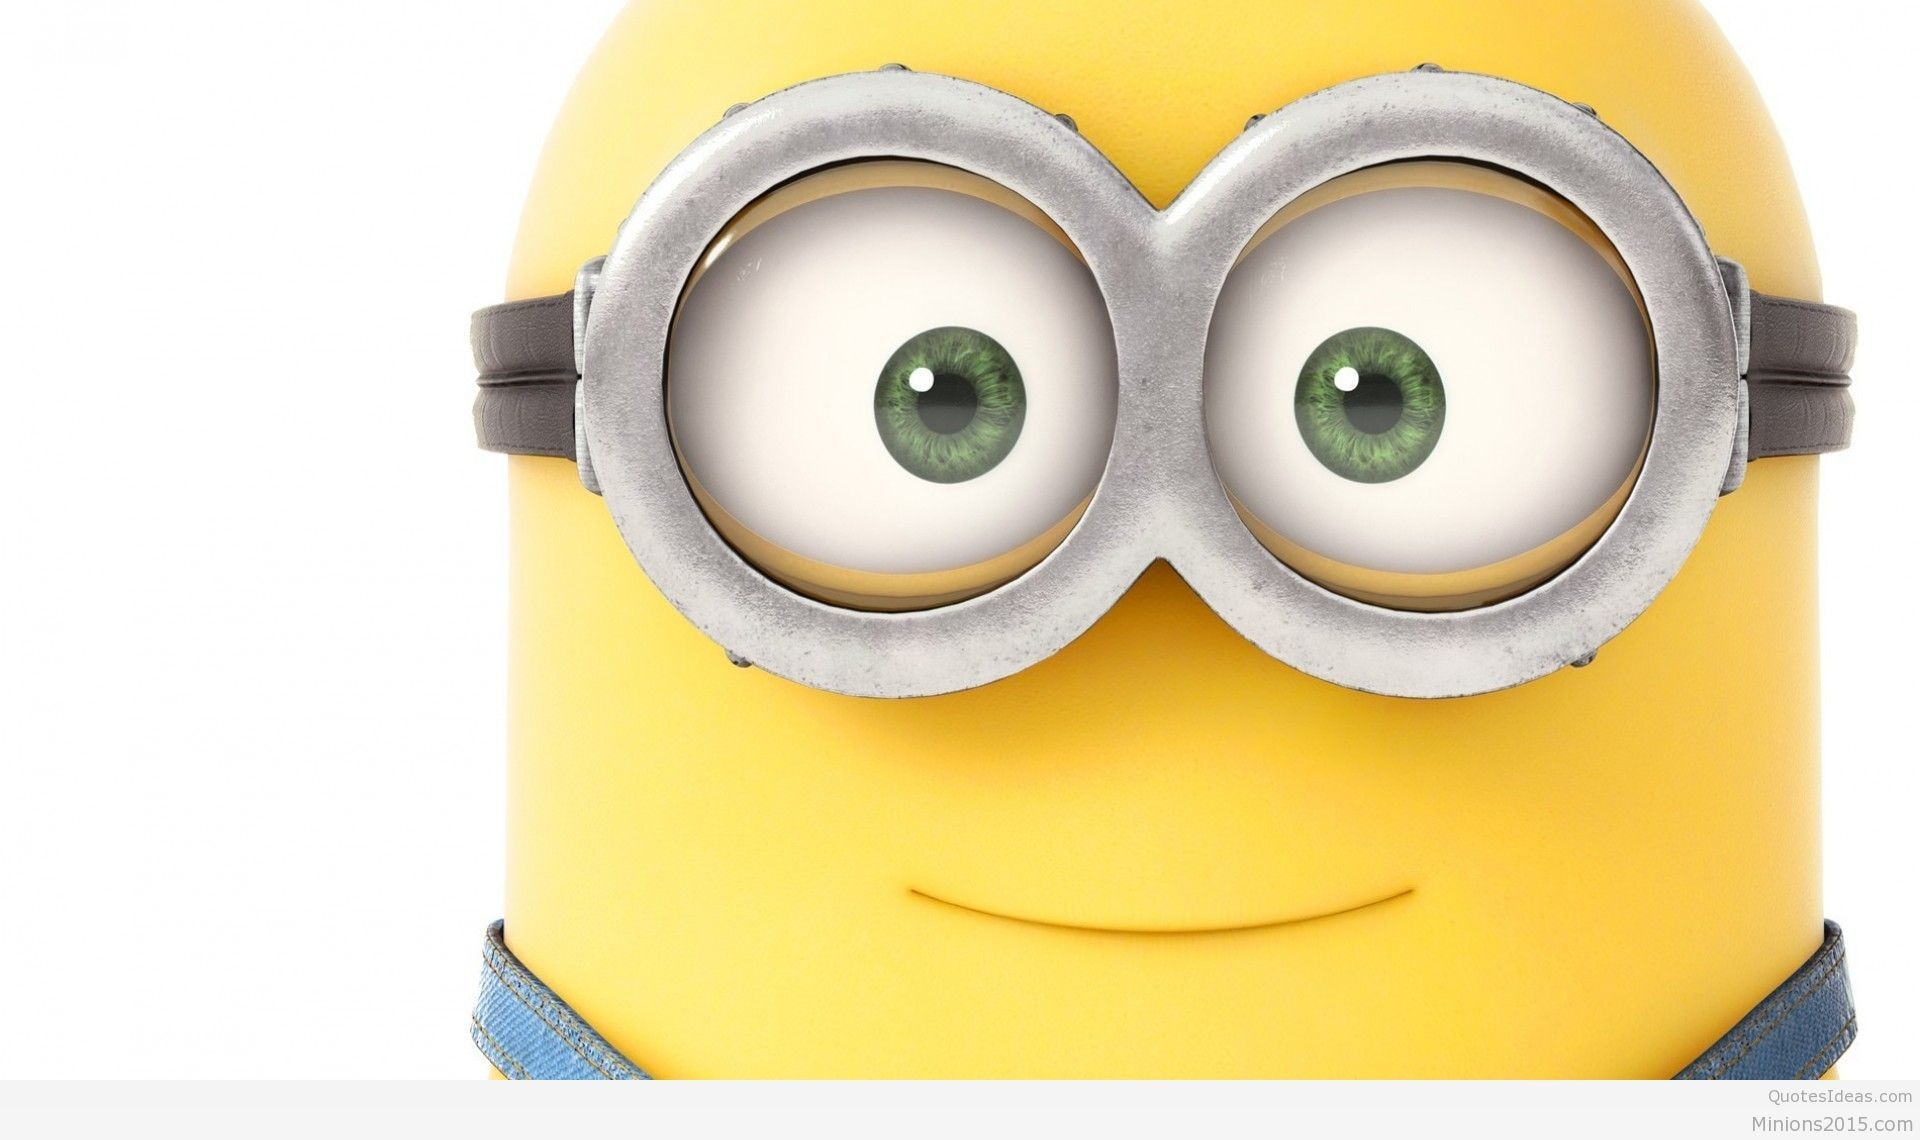 1920x1140 minions-hd-wallpaper-free-hd-desktop-wallpaper-viewhdwall-